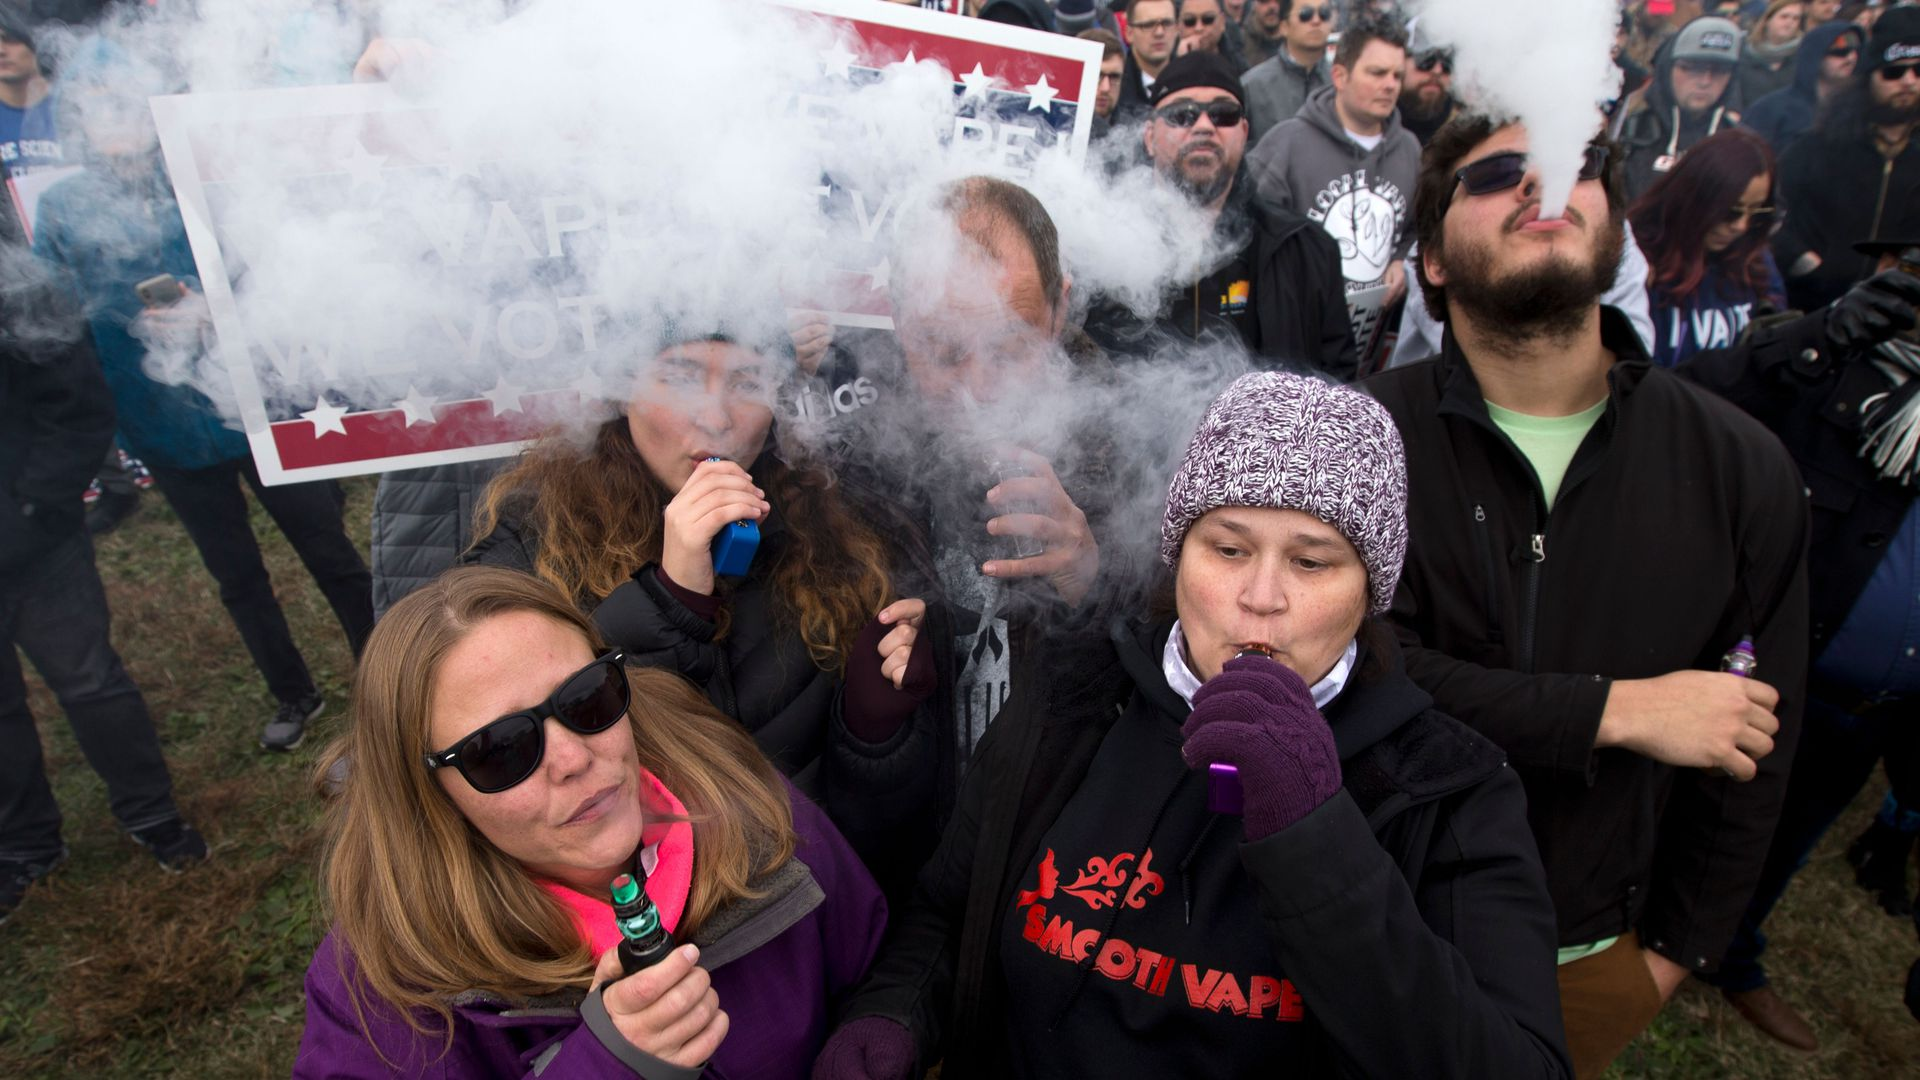 Demonstrators vape during a consumer advocate groups and vape storeowners rally outside of the White House to protest the proposed vaping flavor ban in Washington DC on November 9, 2019.